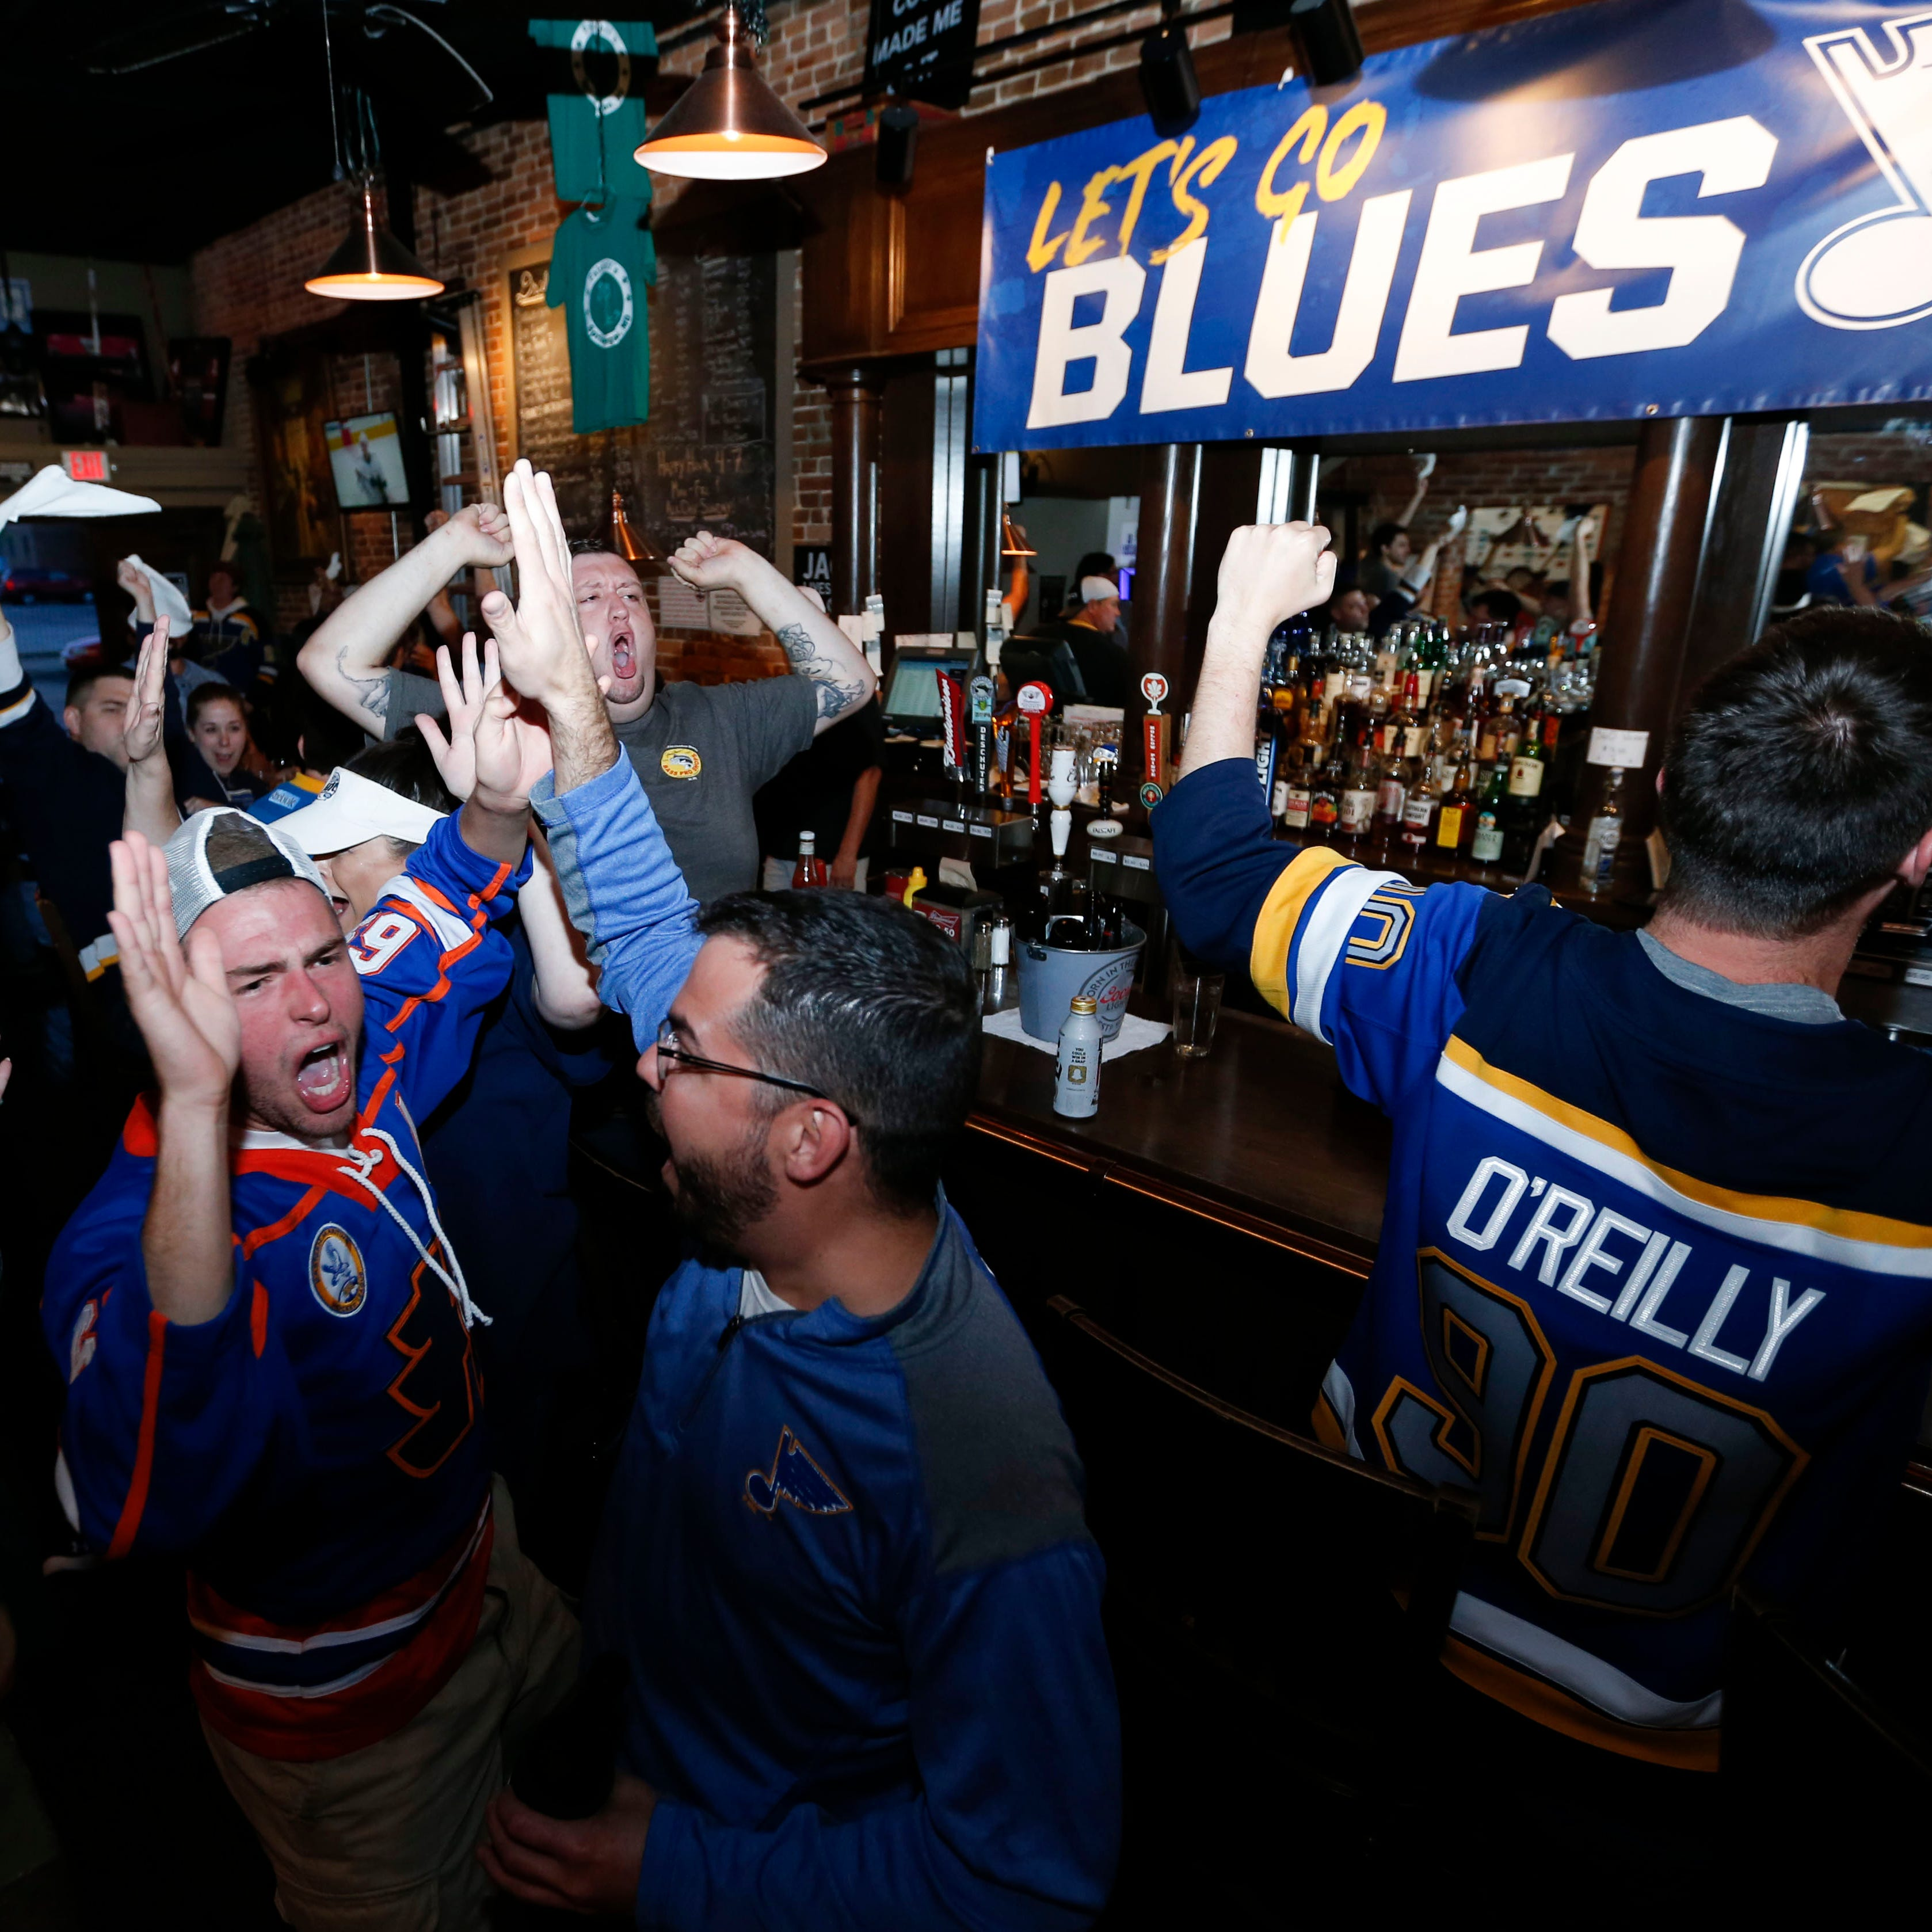 Play Gloria! Local St. Louis Blues fans celebrate advancing to Stanley Cup Final at Falstaff's